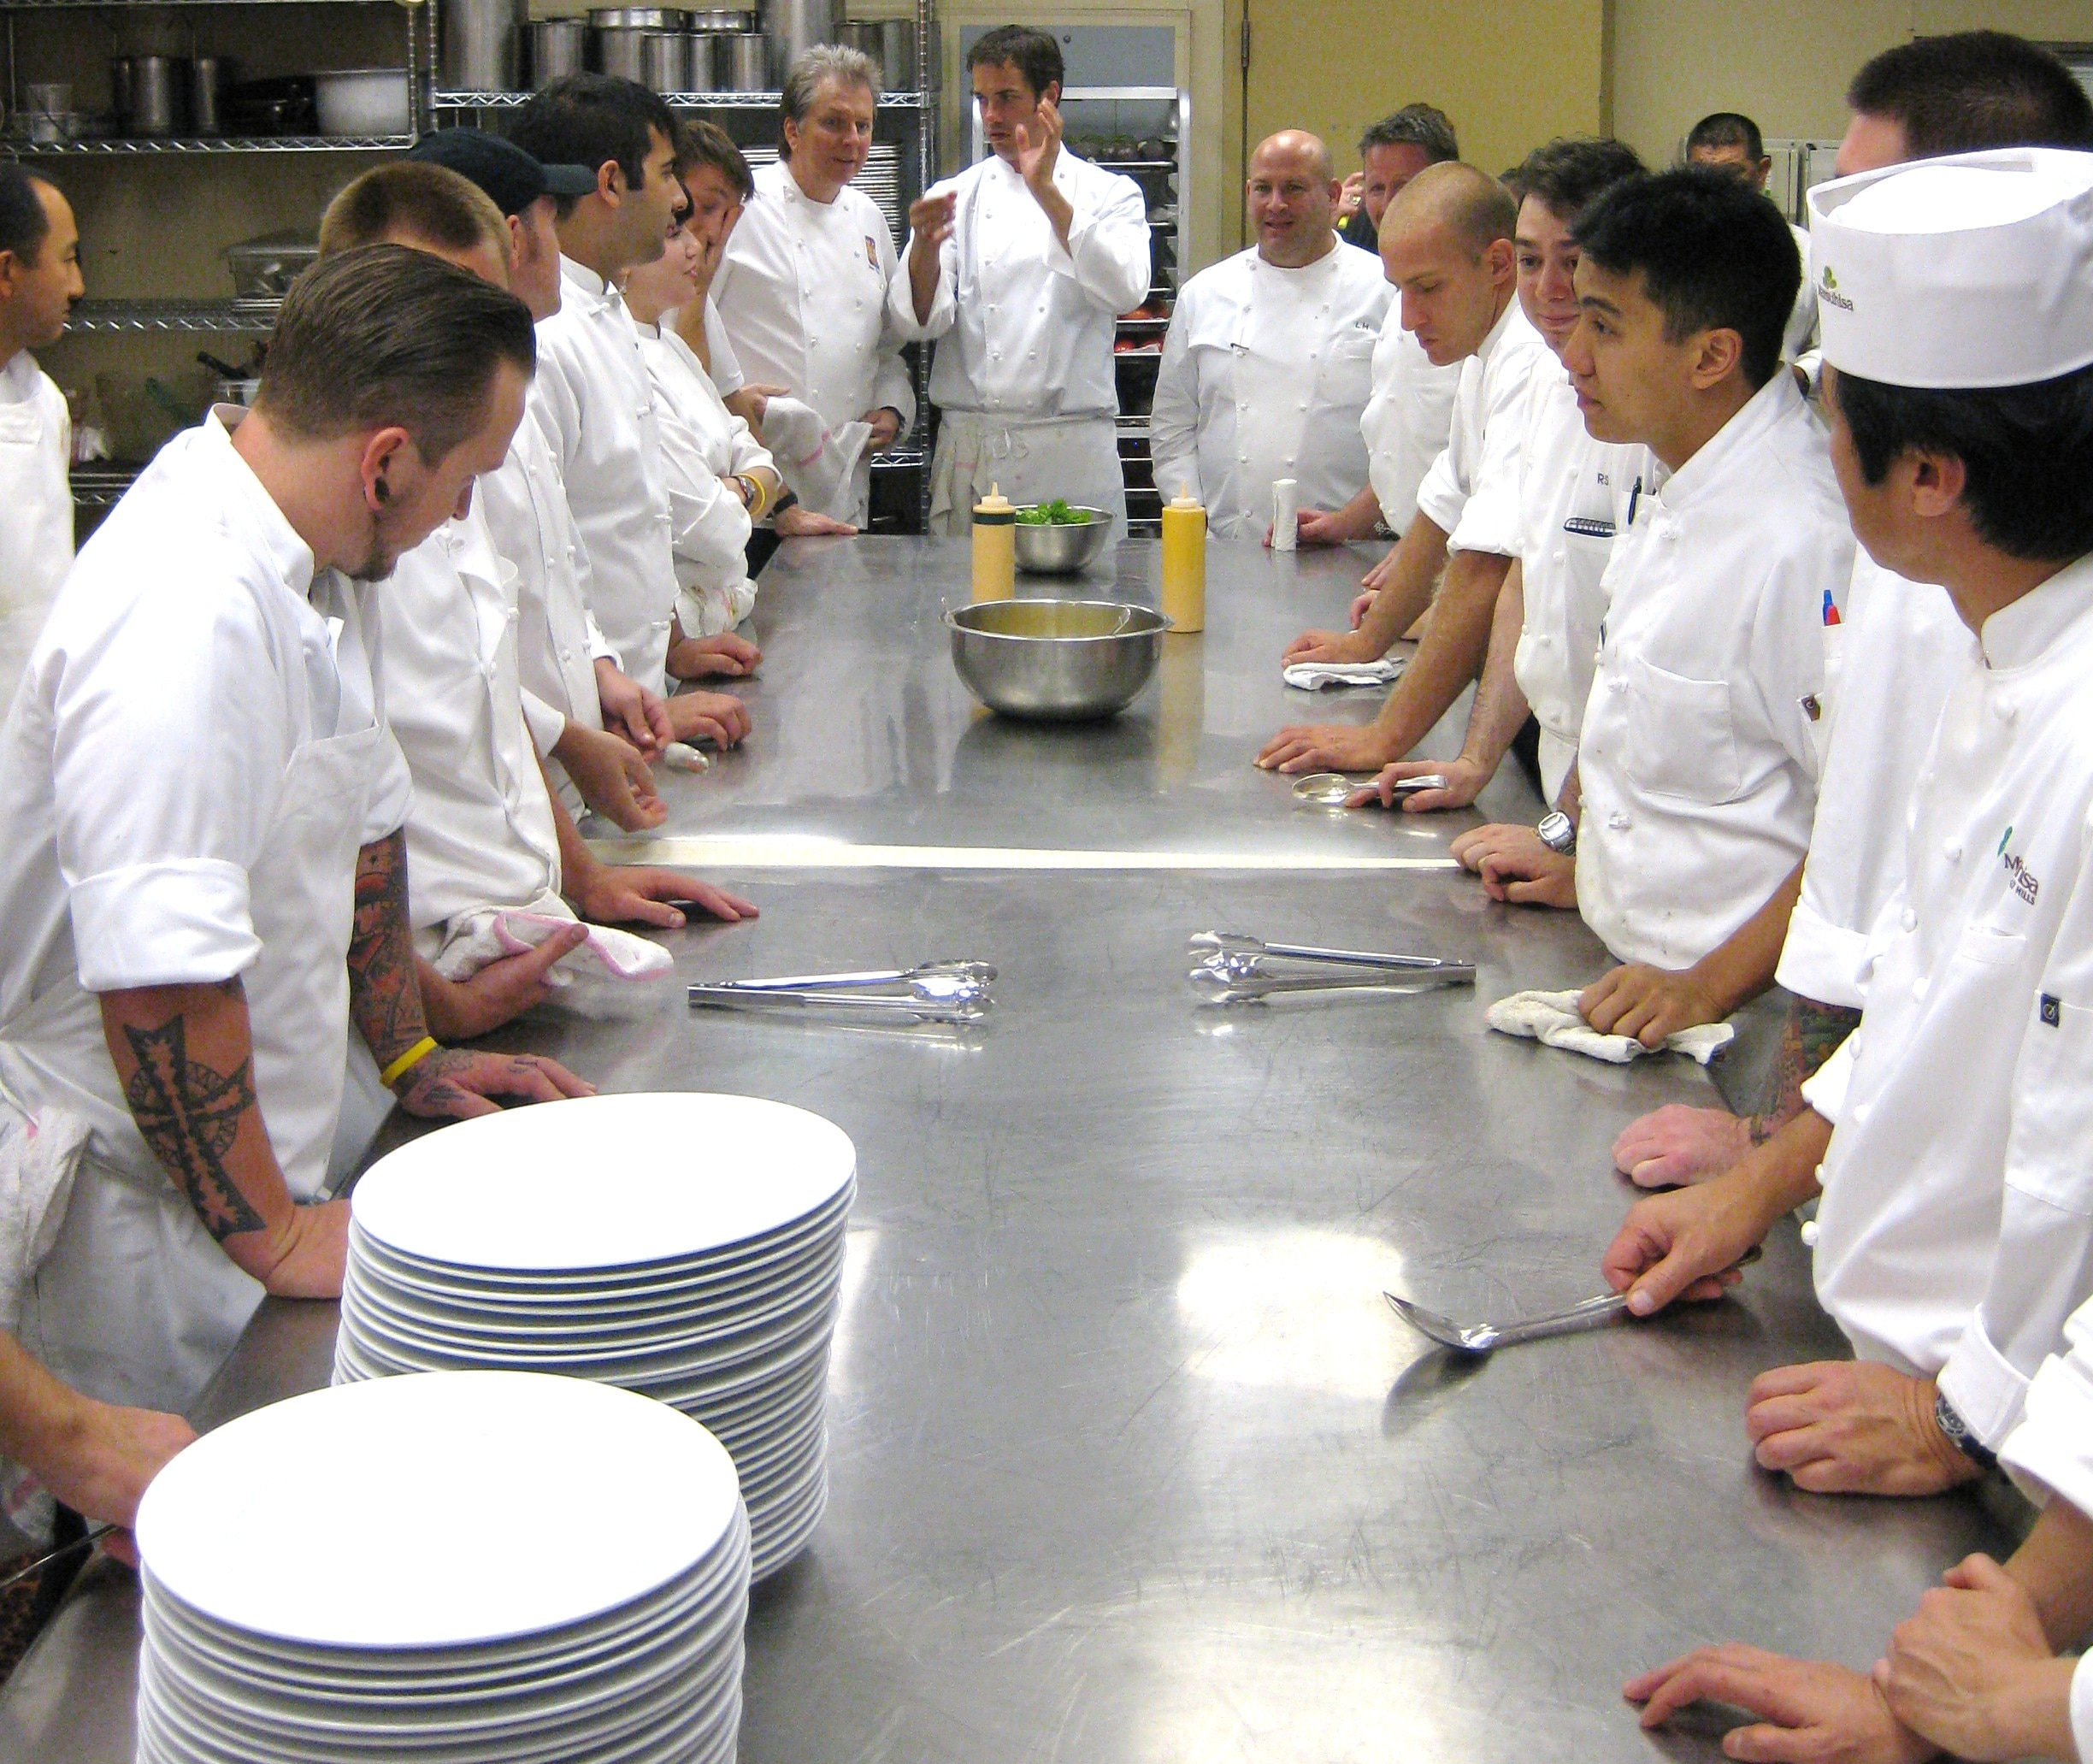 Chefs in the kitchen of Spago Beverly Hills waiting for